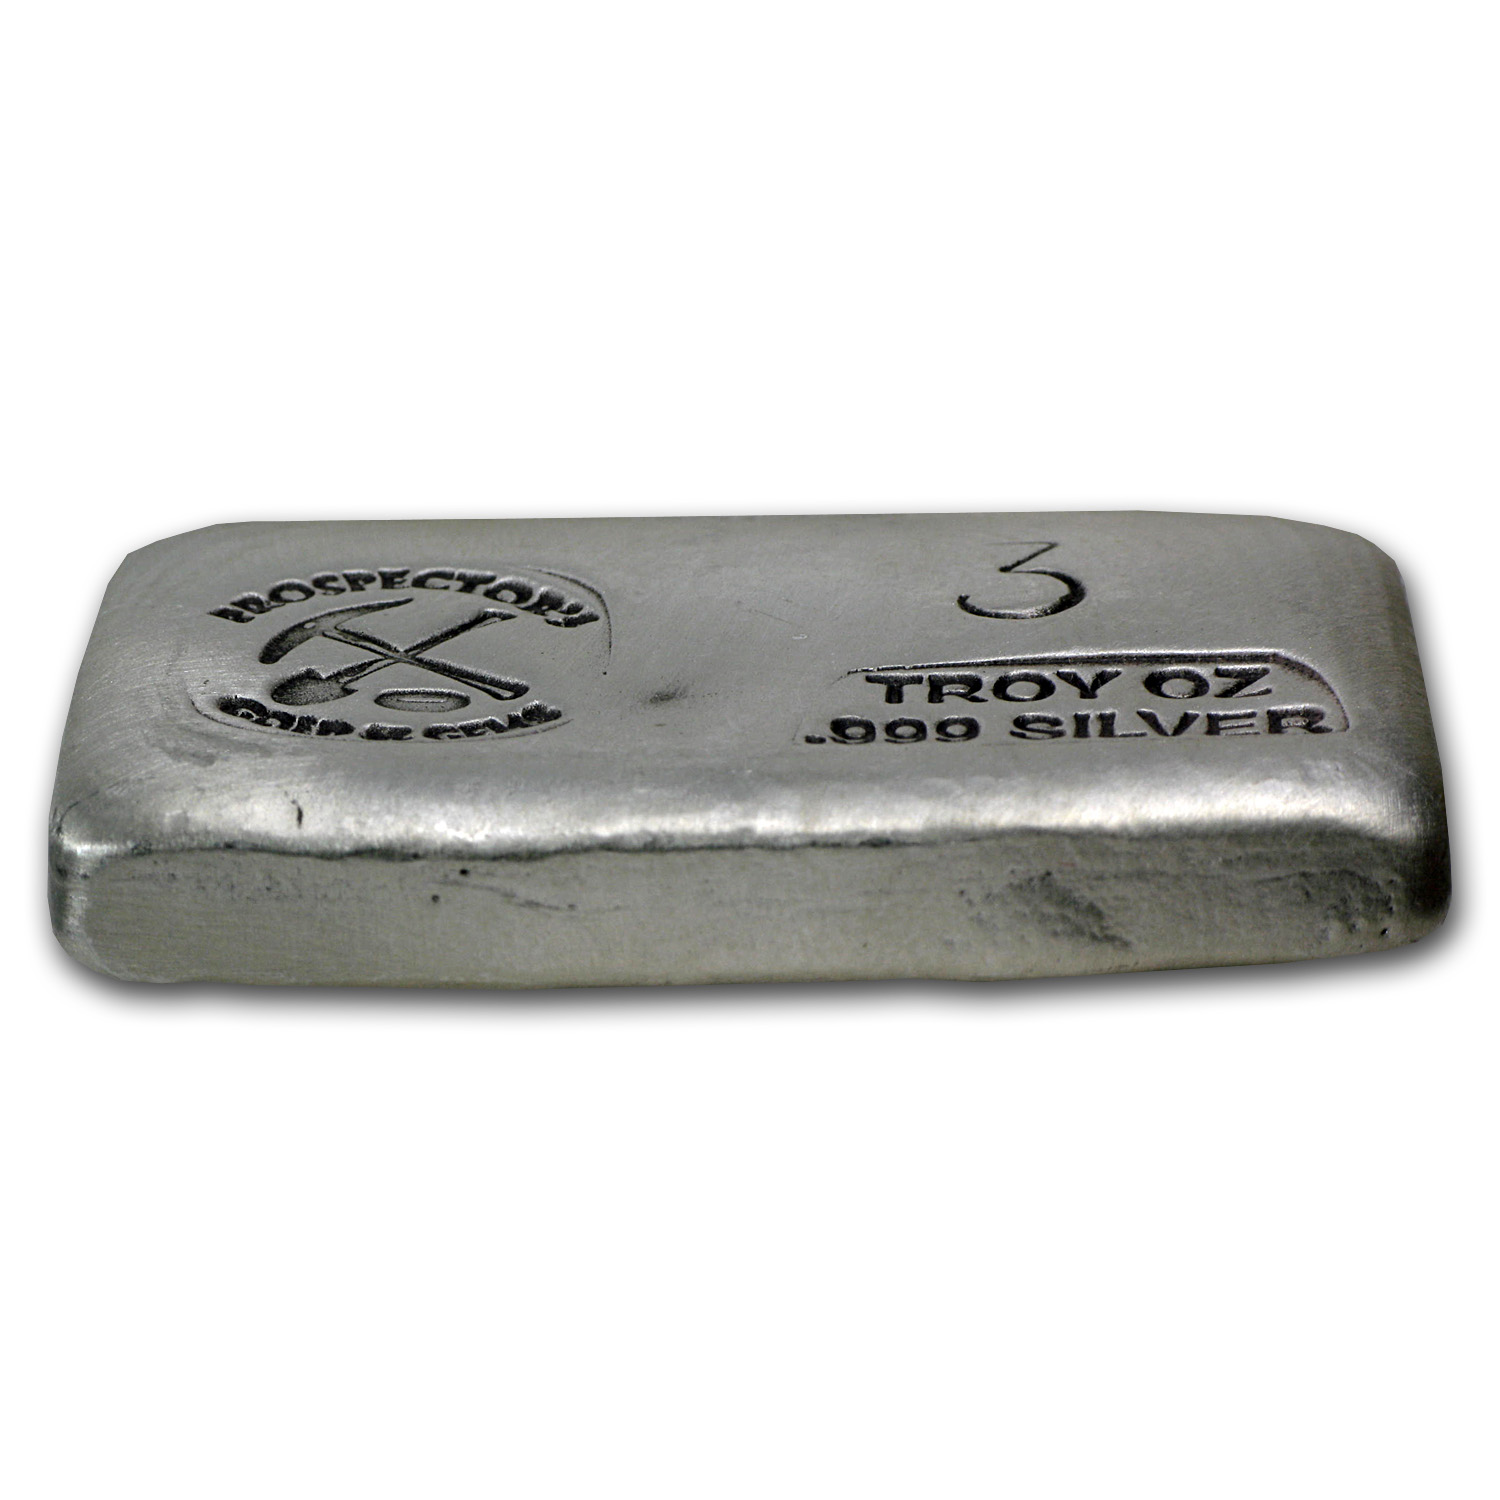 3 oz Silver Bar - Prospector's Gold & Gems